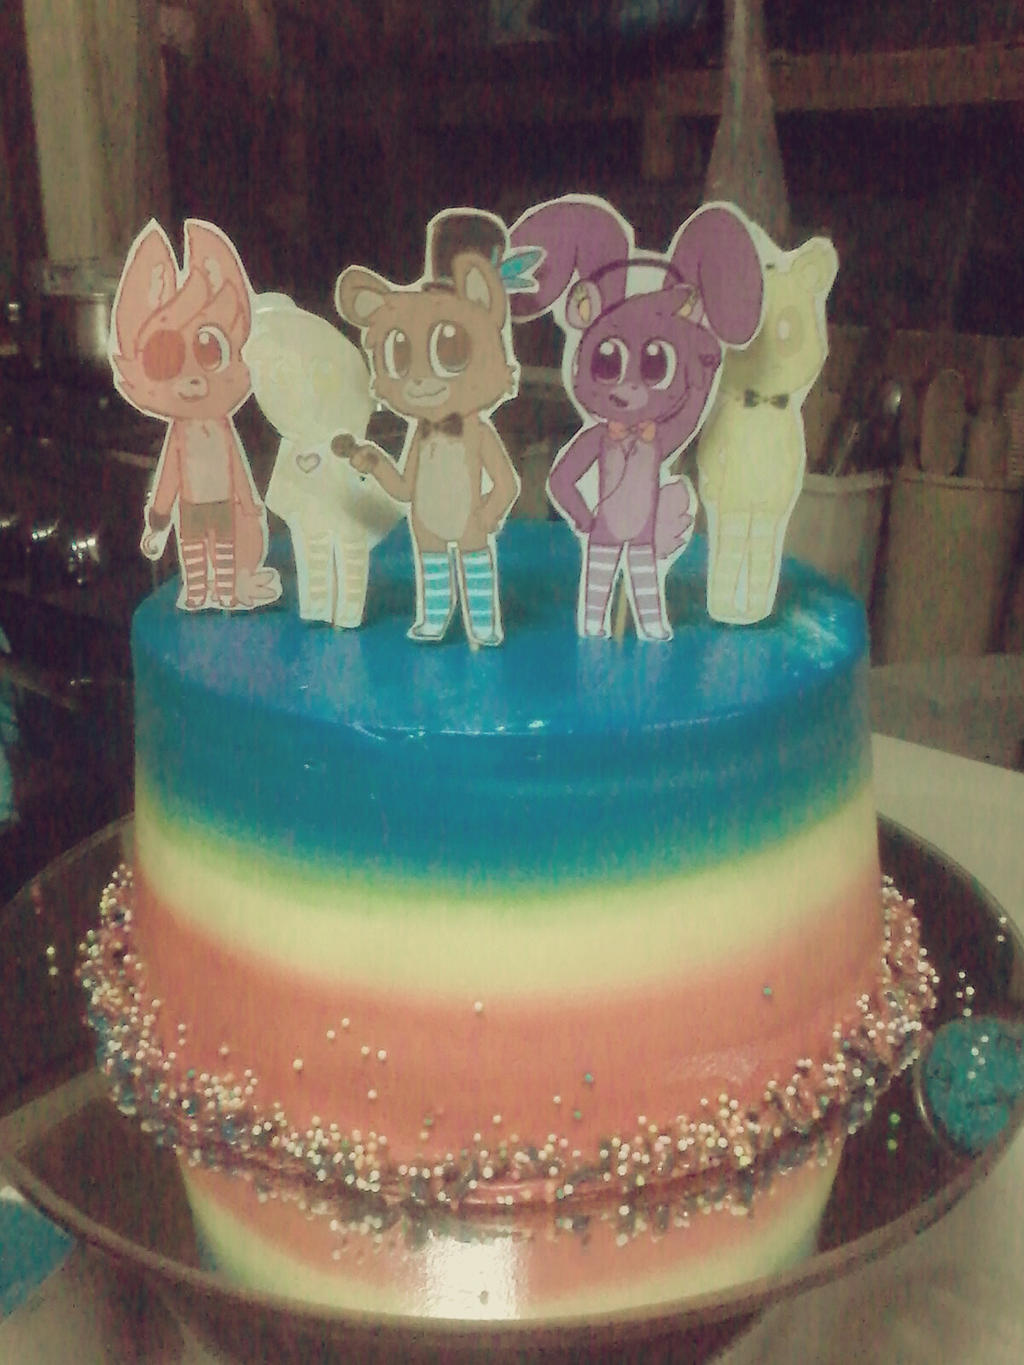 My fnaf birthday cake by cookie and her foxes on deviantart my fnaf birthday cake by cookie and her foxes publicscrutiny Image collections